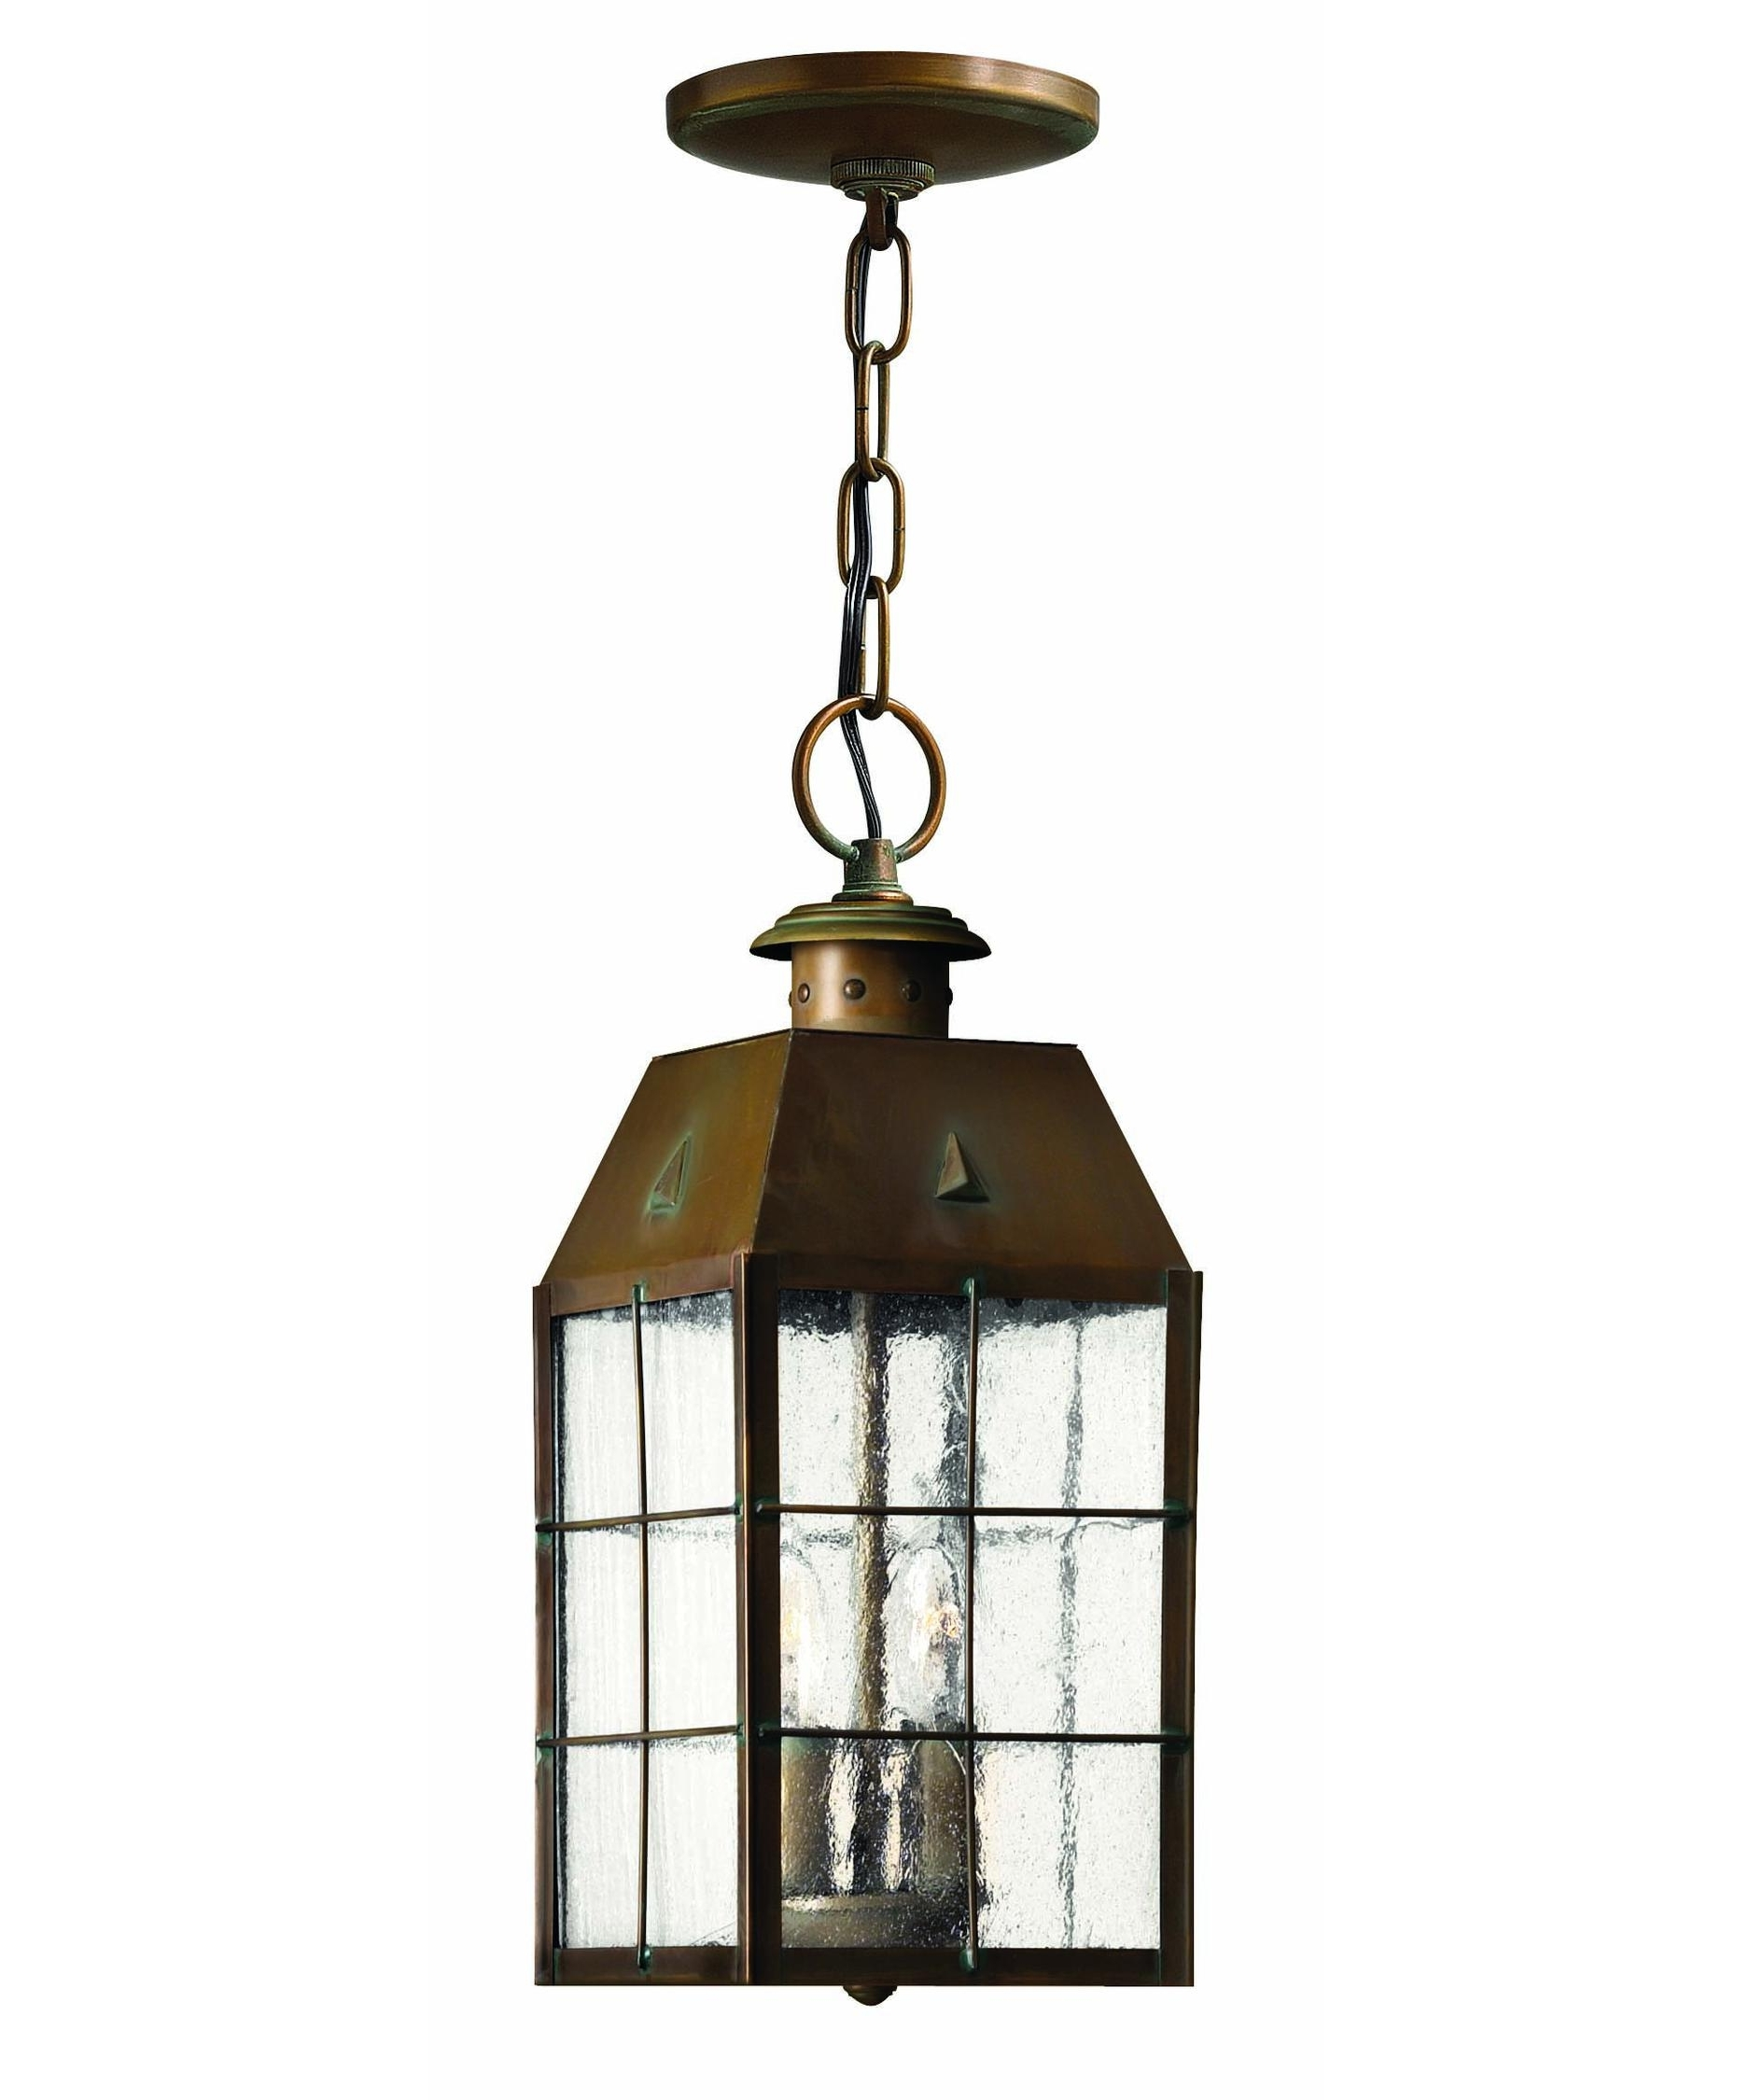 Hinkley Lighting 2372 Nantucket 6 Inch Wide 2 Light Outdoor Hanging Intended For Latest Outdoor Hanging Lamps (View 6 of 20)